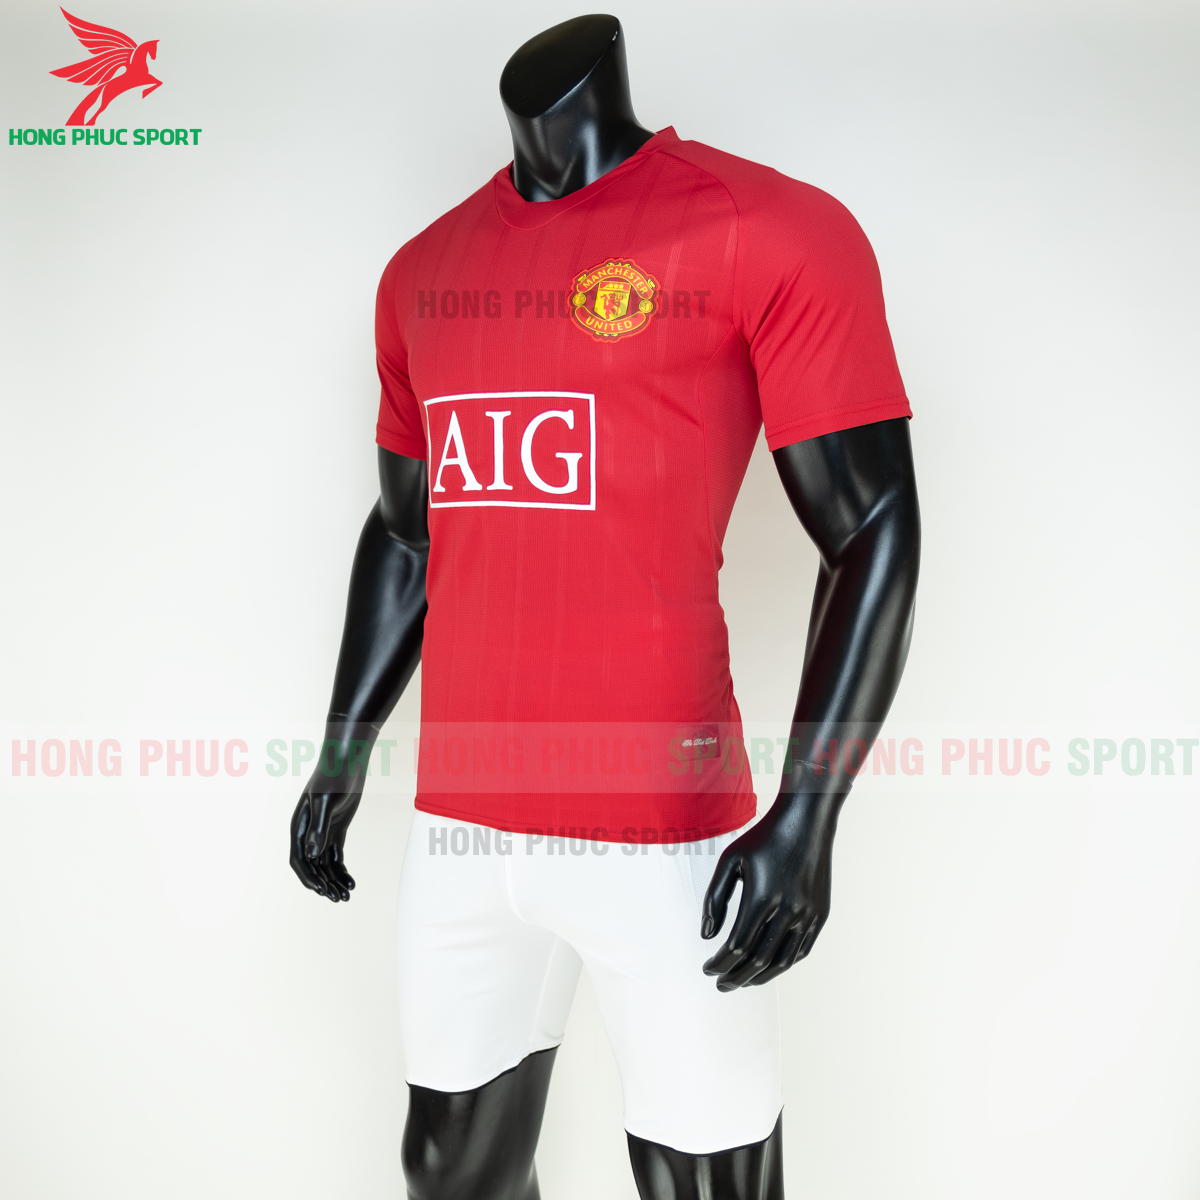 https://cdn.hongphucsport.com/unsafe/s4.shopbay.vn/files/285/ao-manchester-united-2008-2009-san-nha-hang-thailand-3-5fb1fa653e37a.png